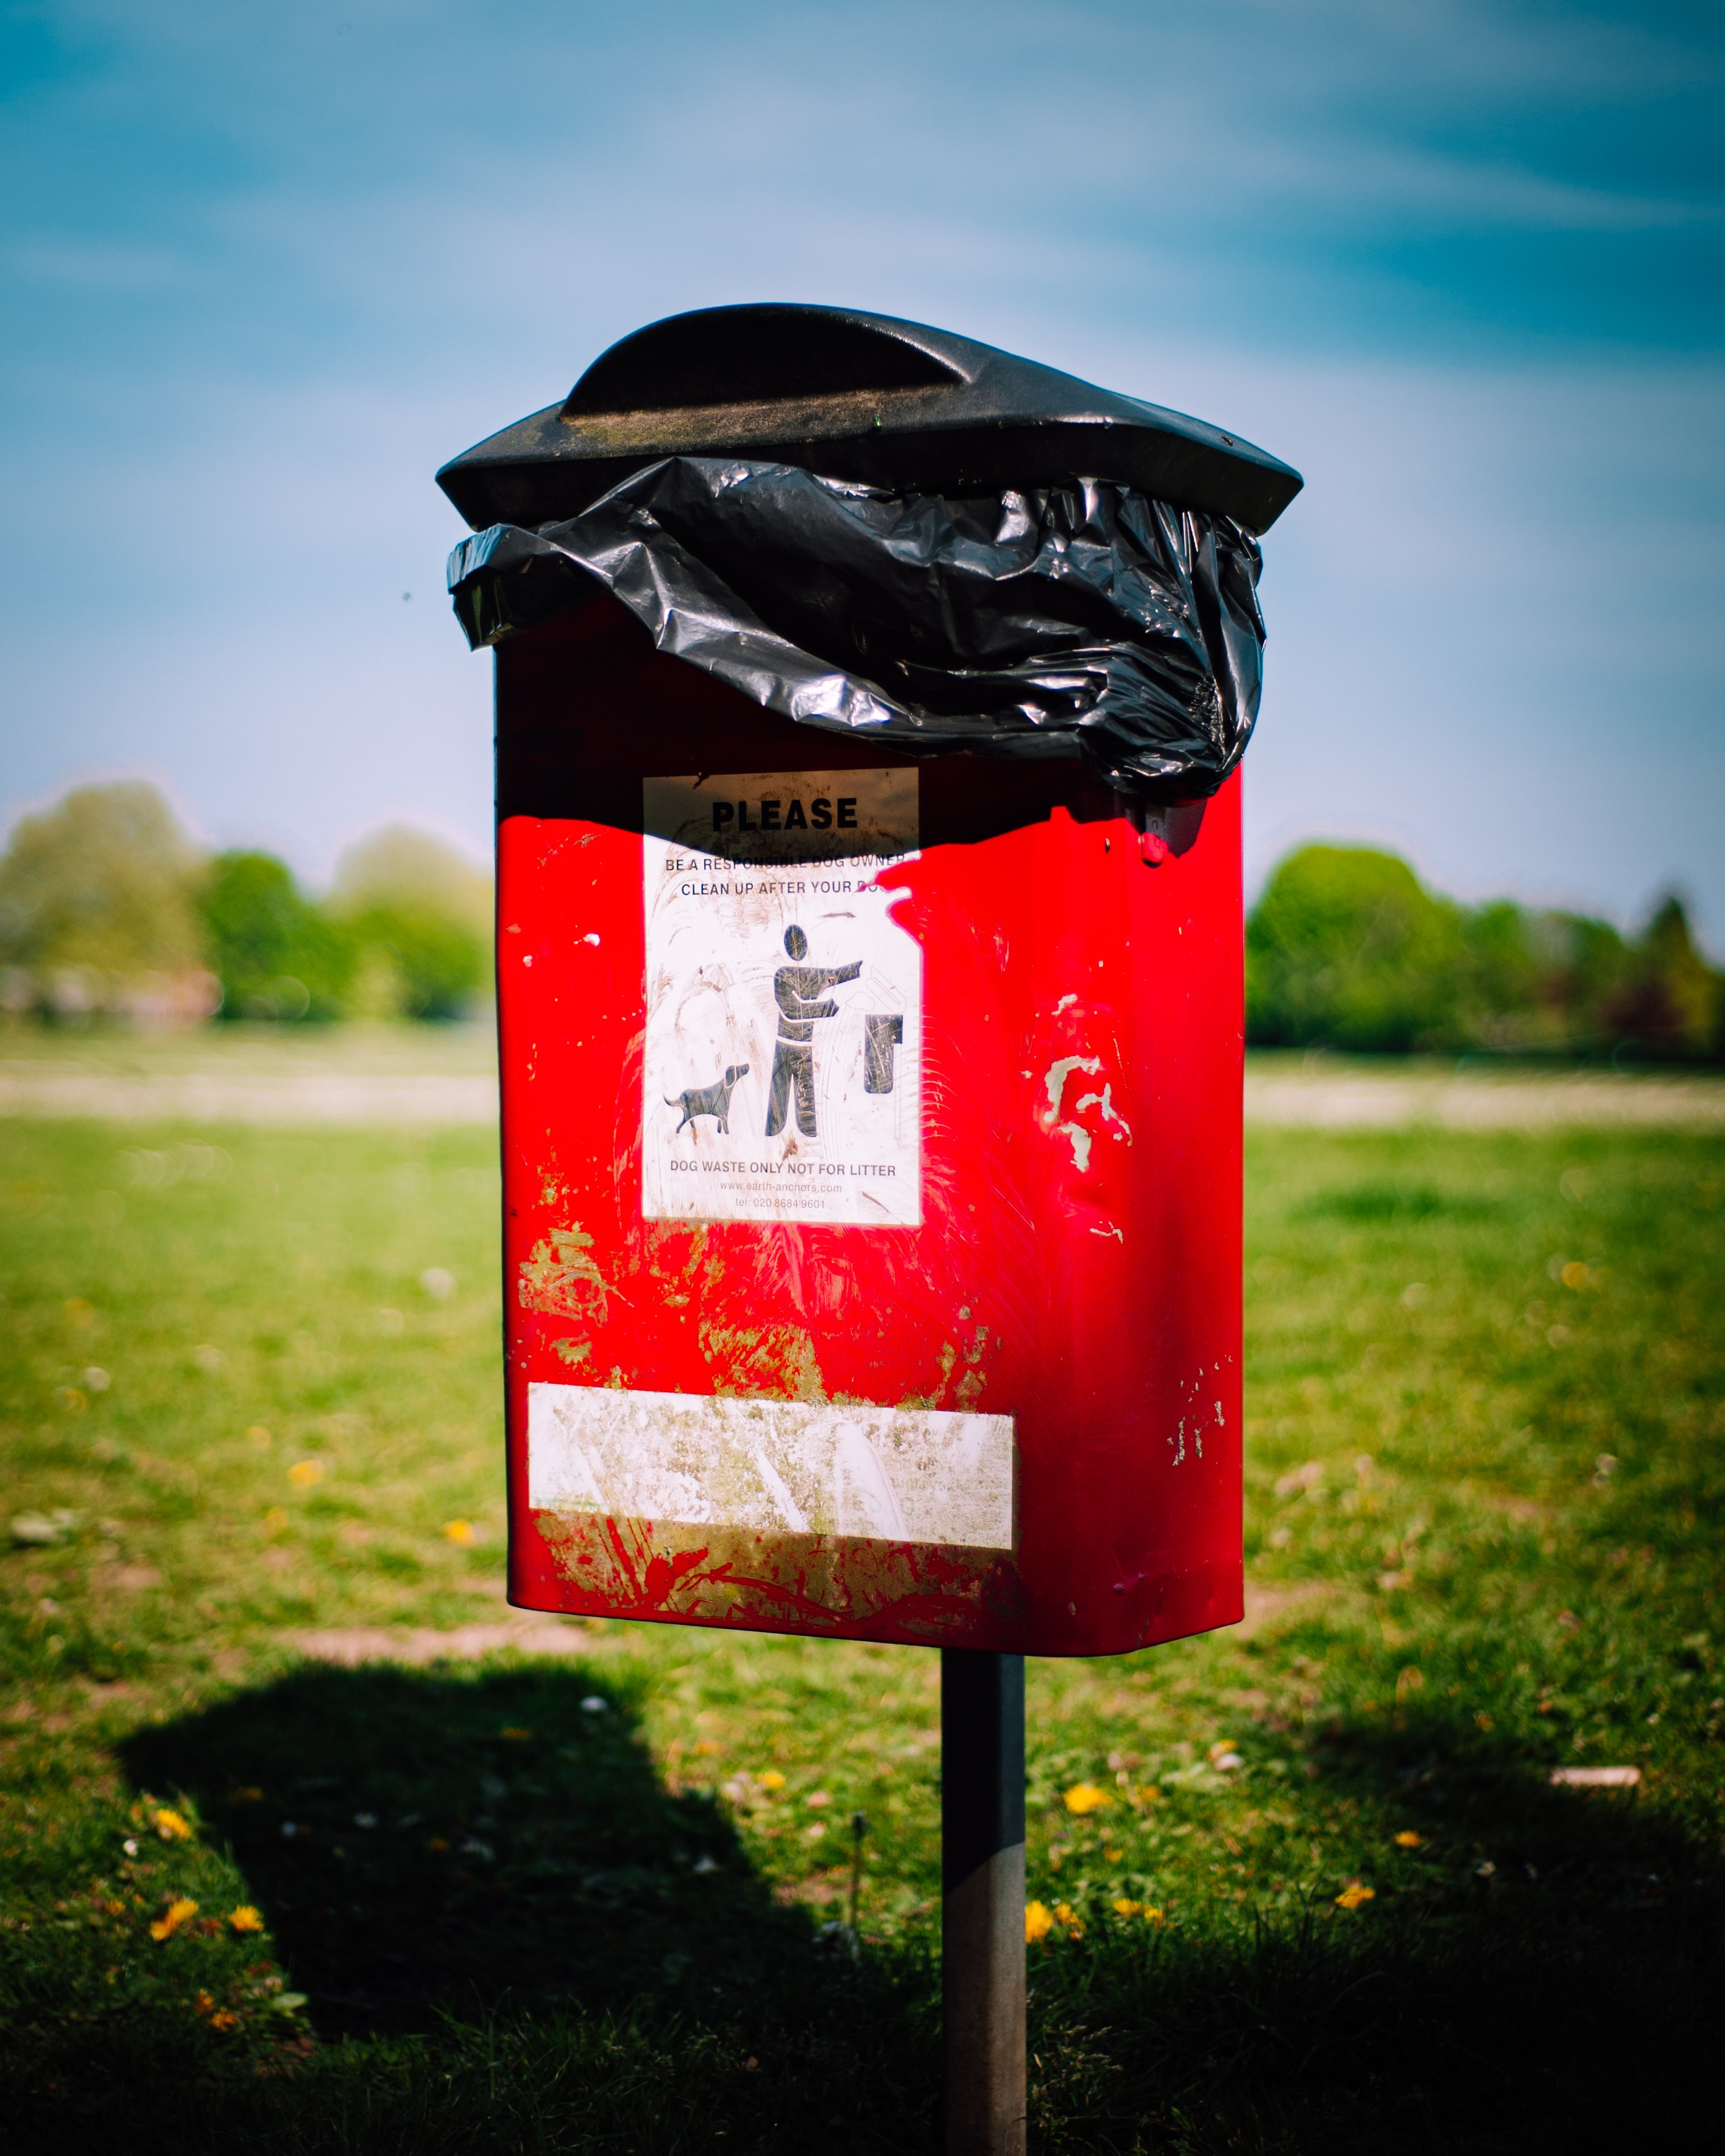 red dog poo bin on a field in daytime